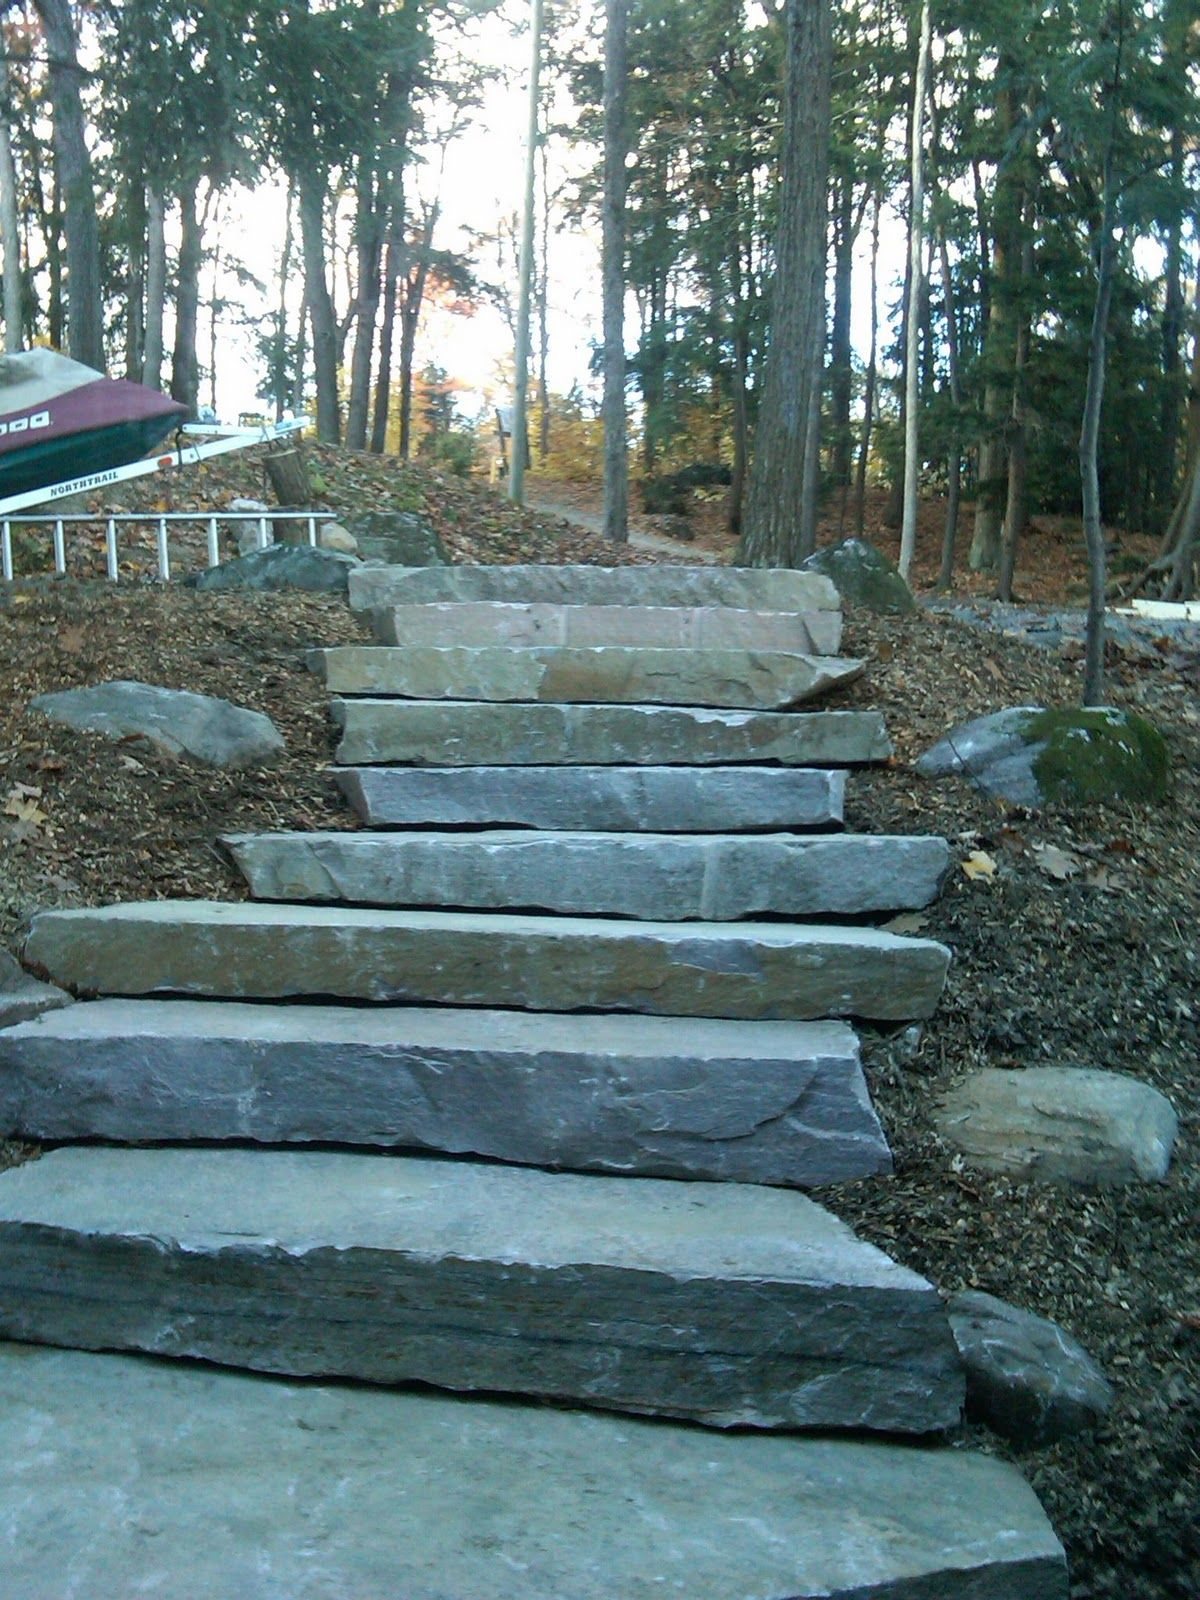 Joe DaCosta Contractor in Muskoka.blogger.com: Lake Muskoka - Granite Steps to Cottage on Muskoka